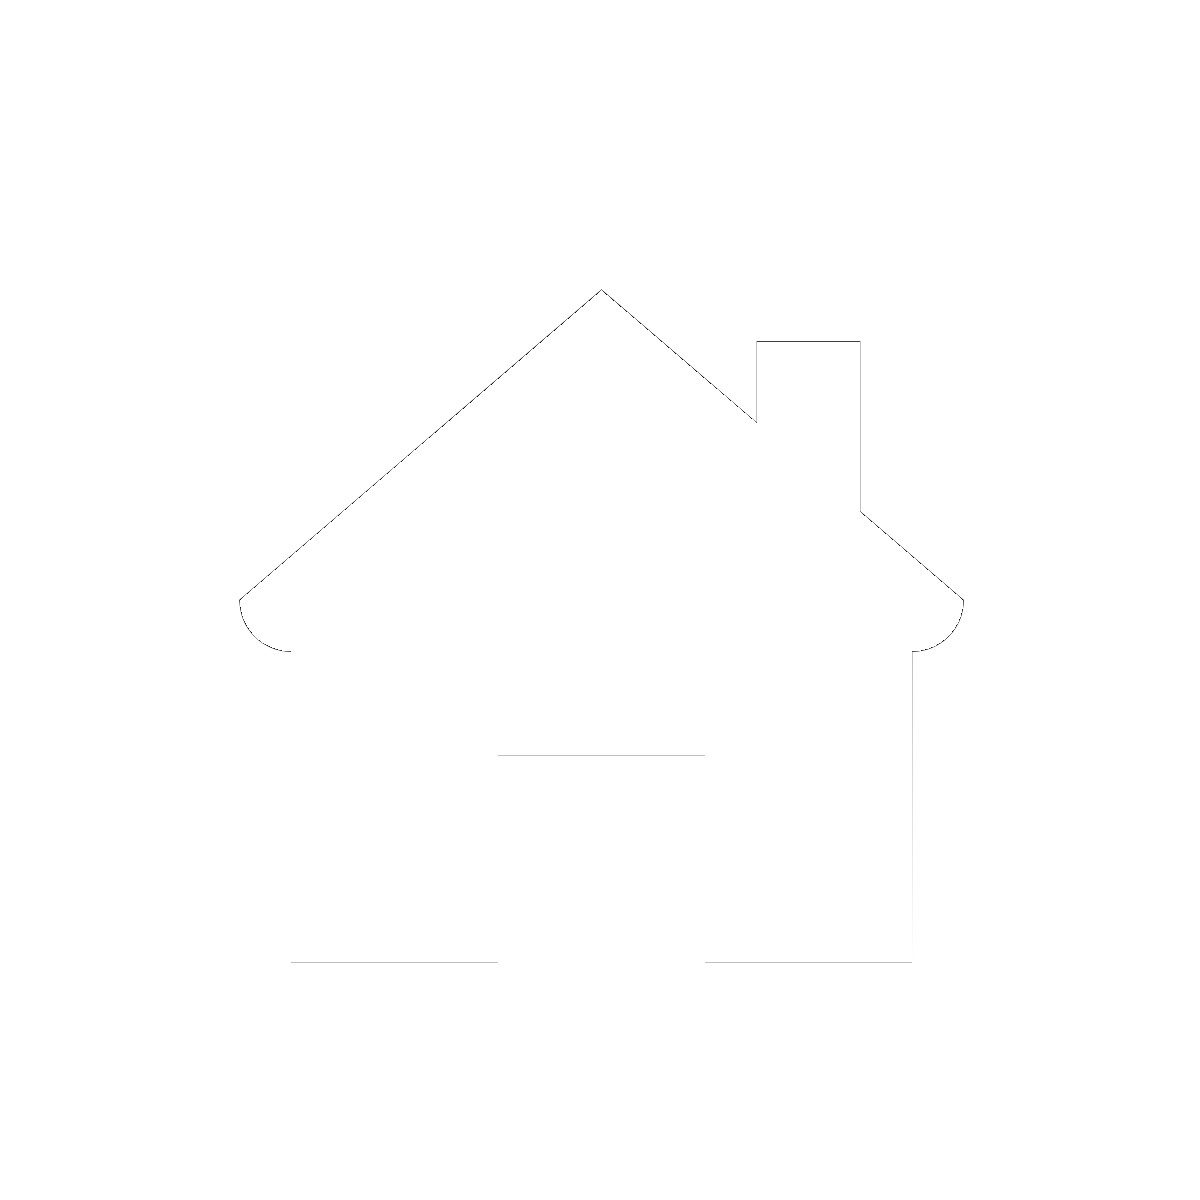 Symbol The House